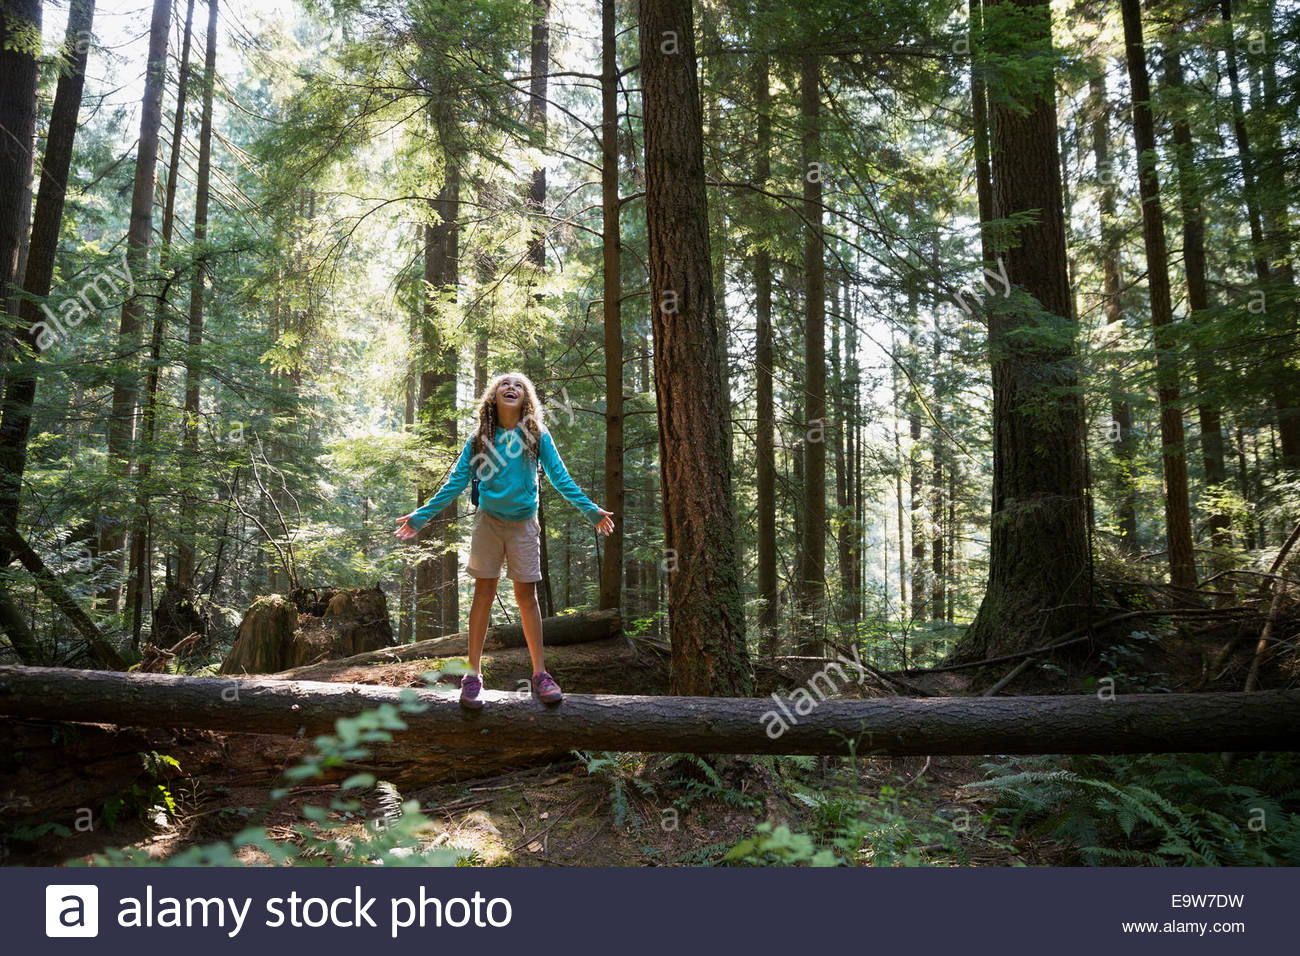 Girl with arms outstretched on tree in woods Photo Stock